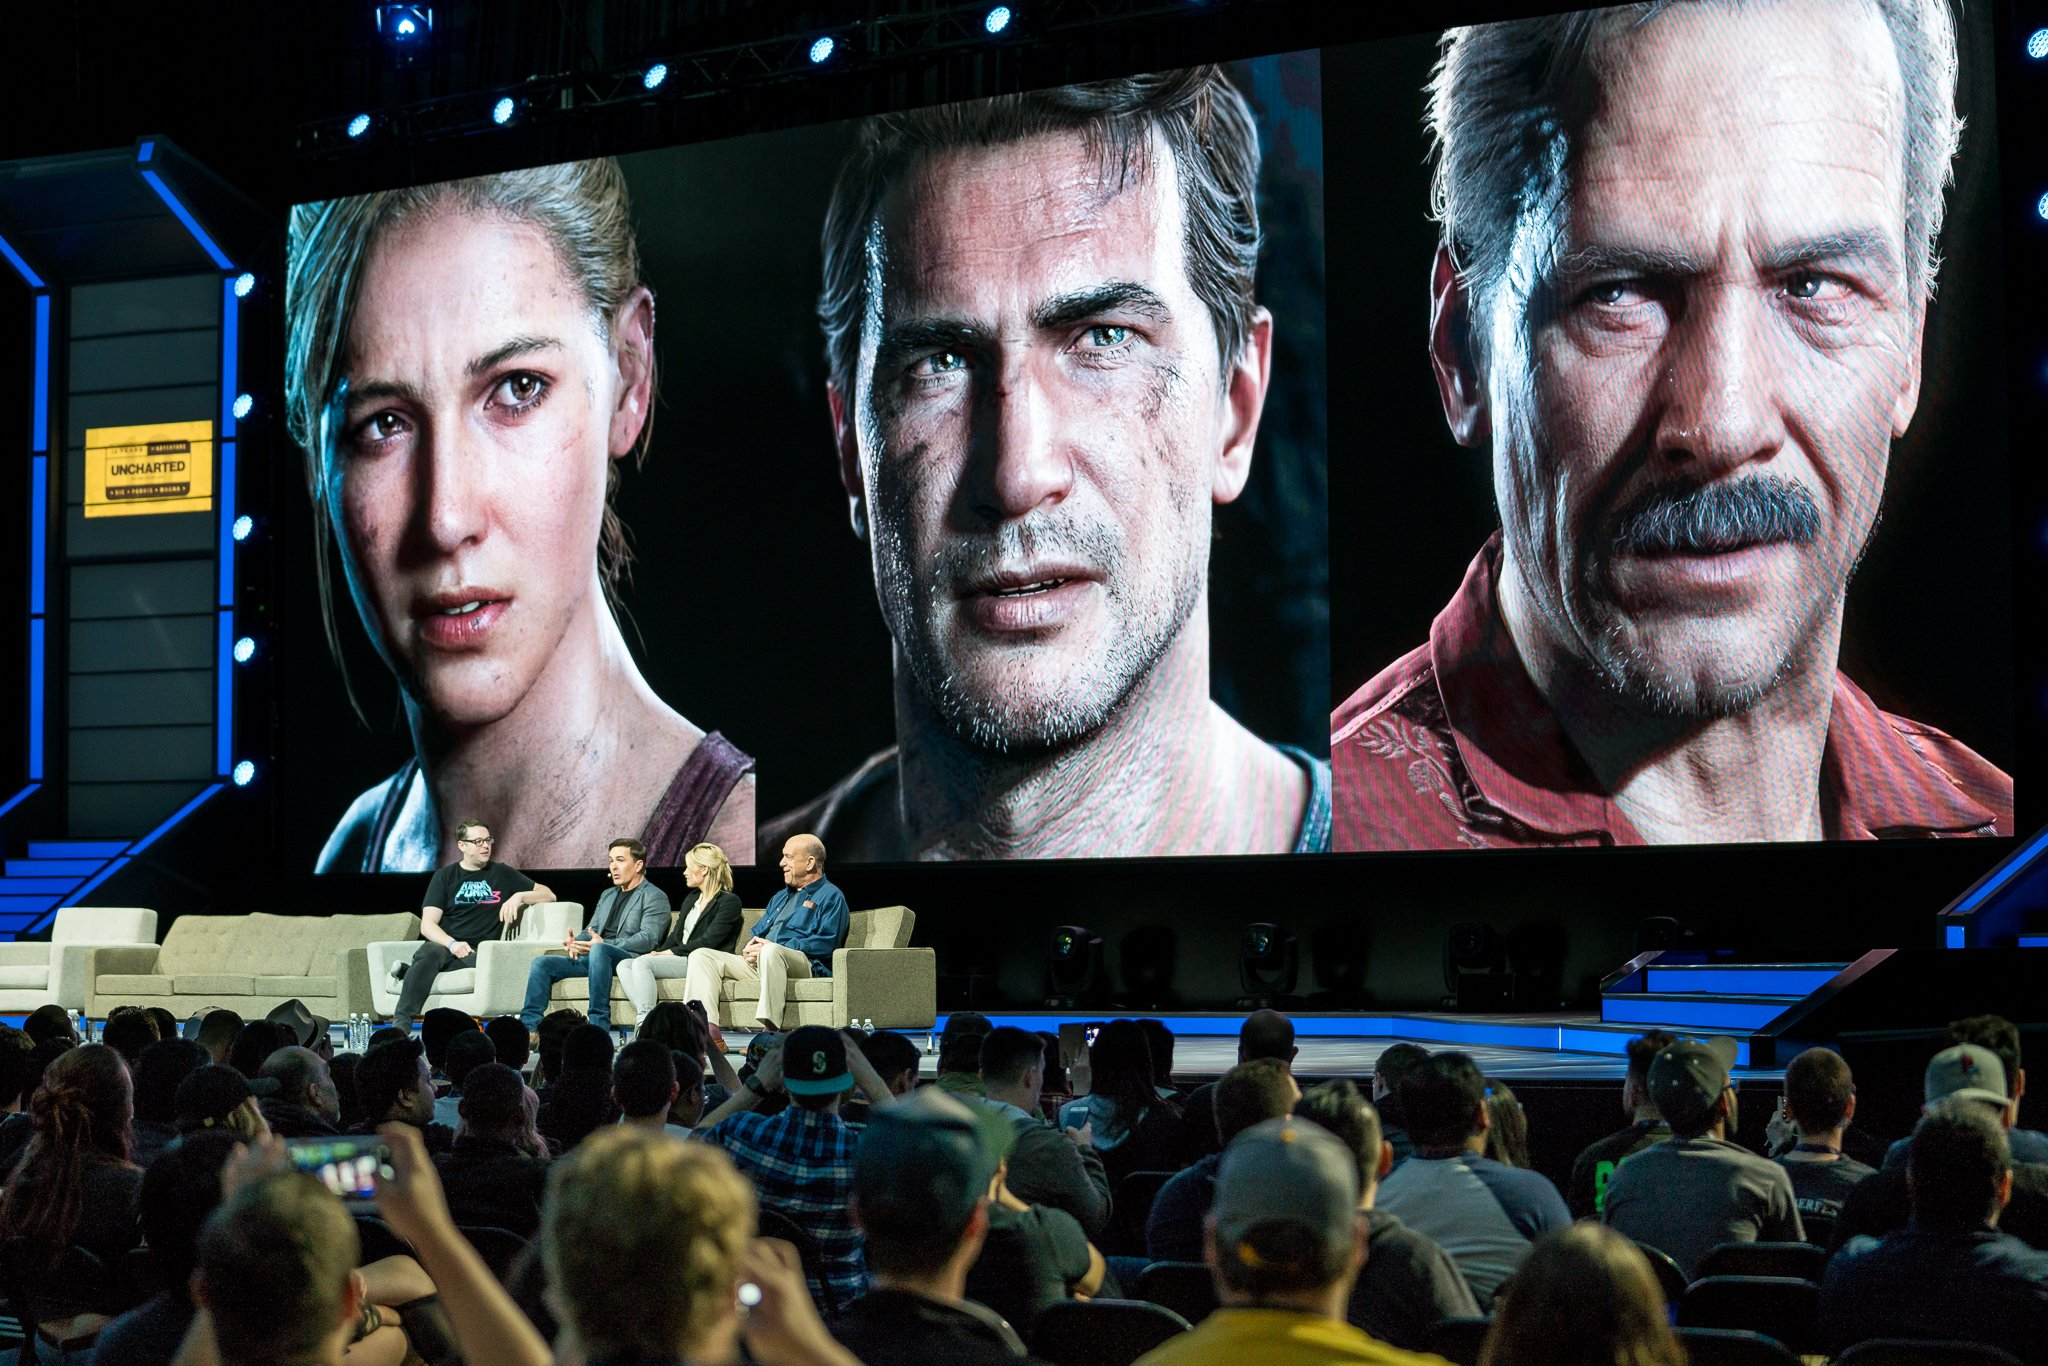 Nate, Elena and Sully take the stage. #PSX  https://t.co/6WGSKHicJz https://t.co/oMcPL6PRyw